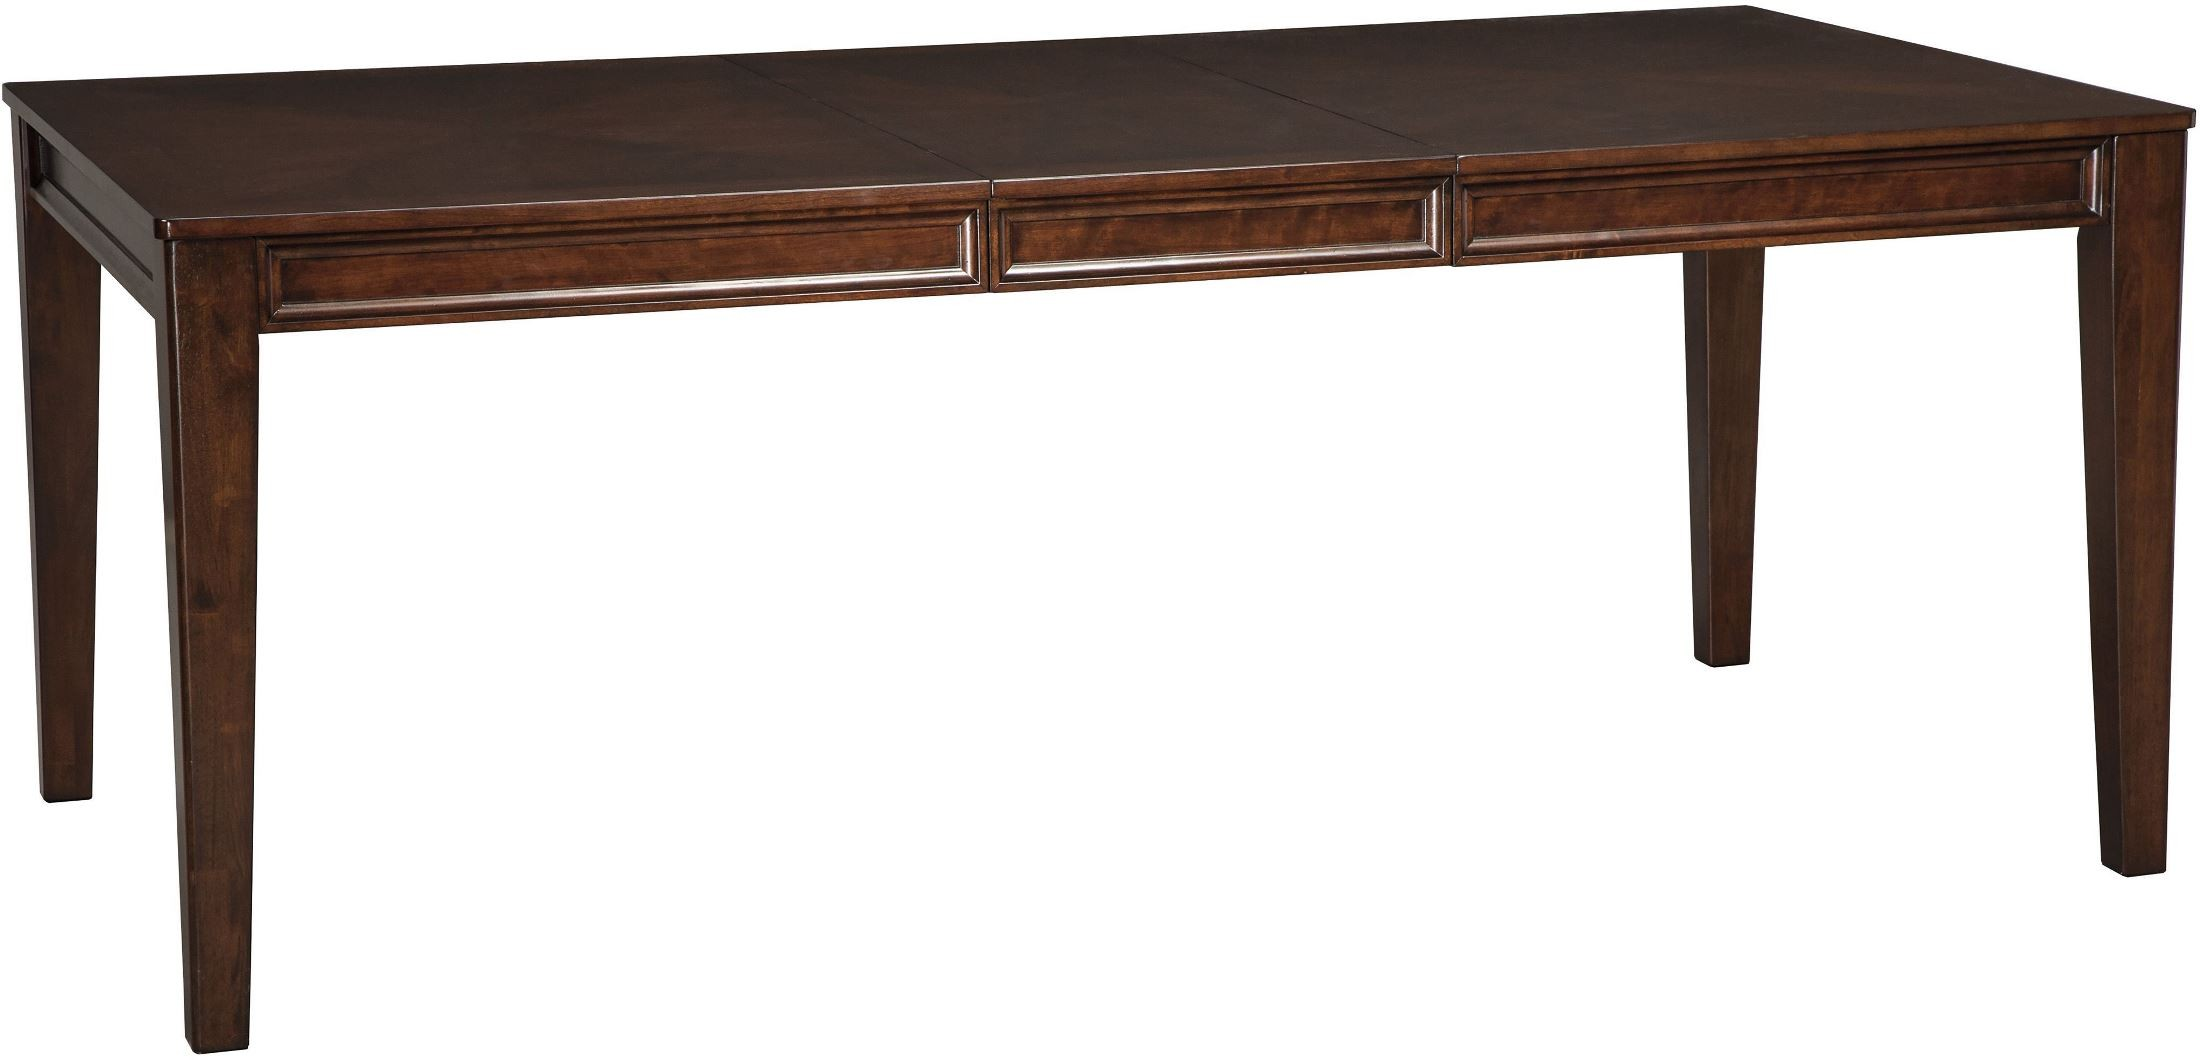 shadyn brown rectangular extendable dining table from